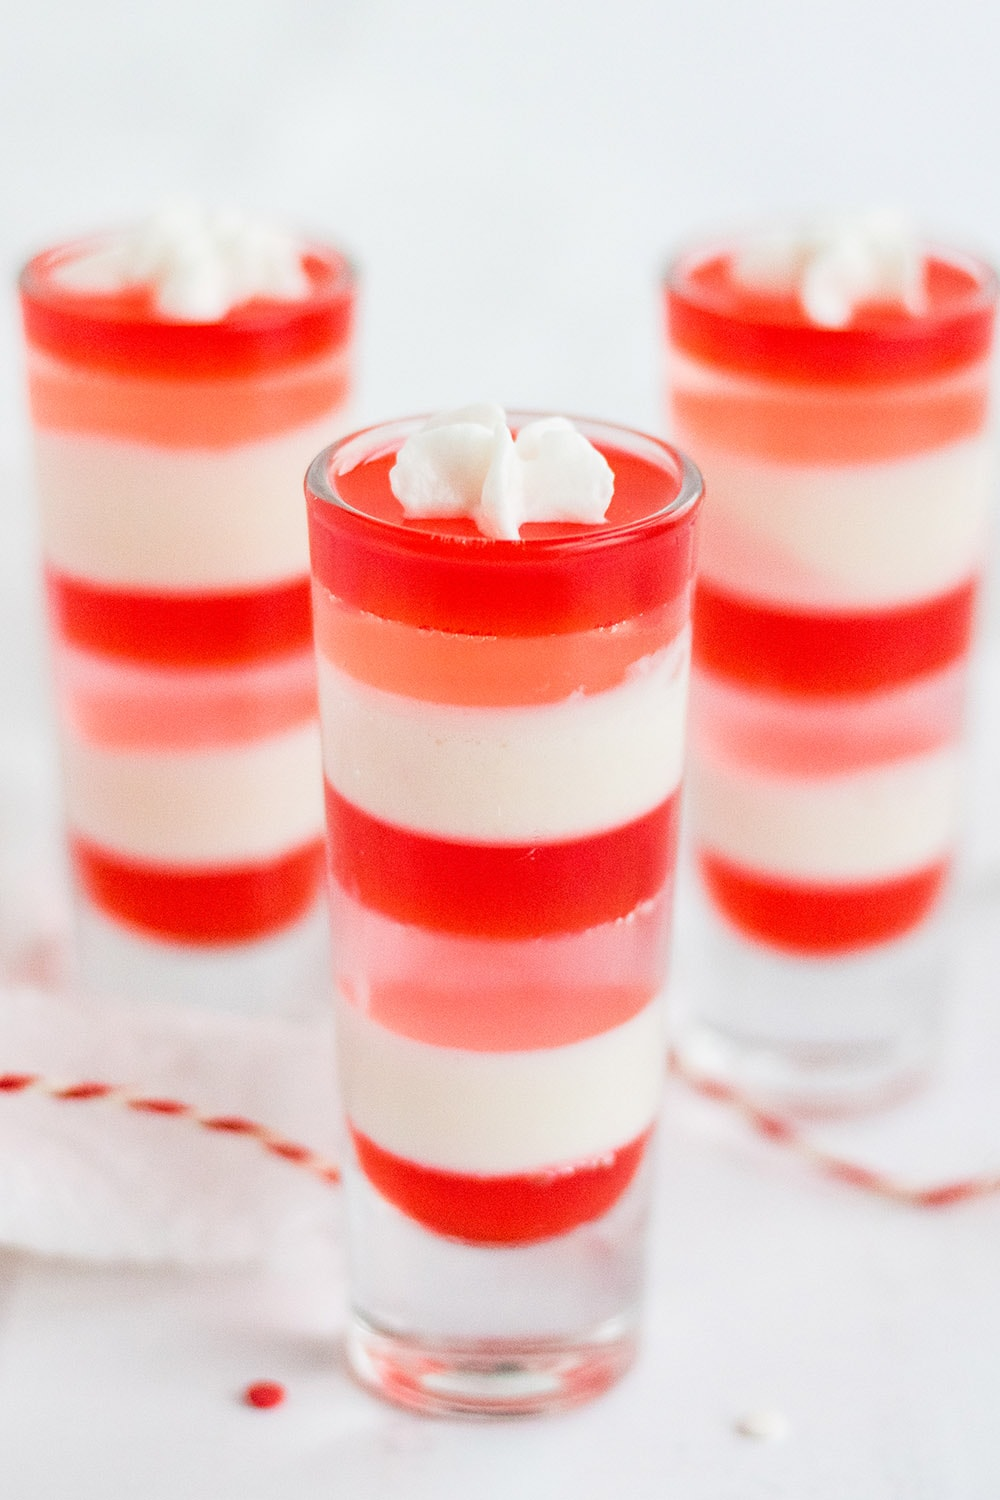 Three shooter glasses with layers of white, pink, and red jello.